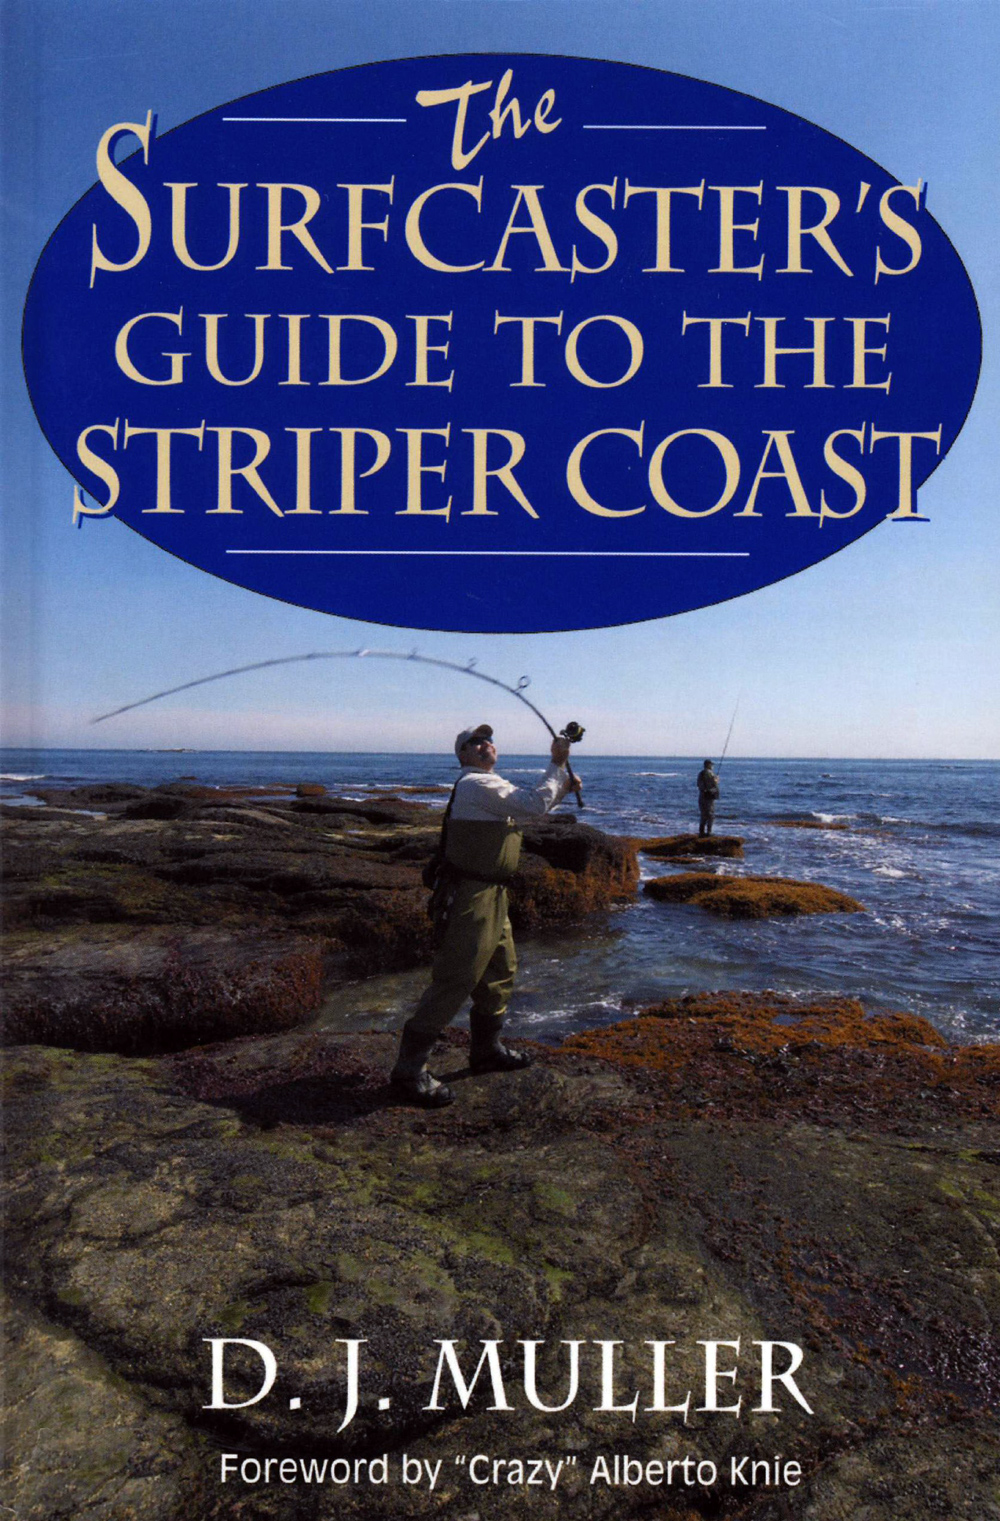 The Surfcaster's Guide to the Striper Coast